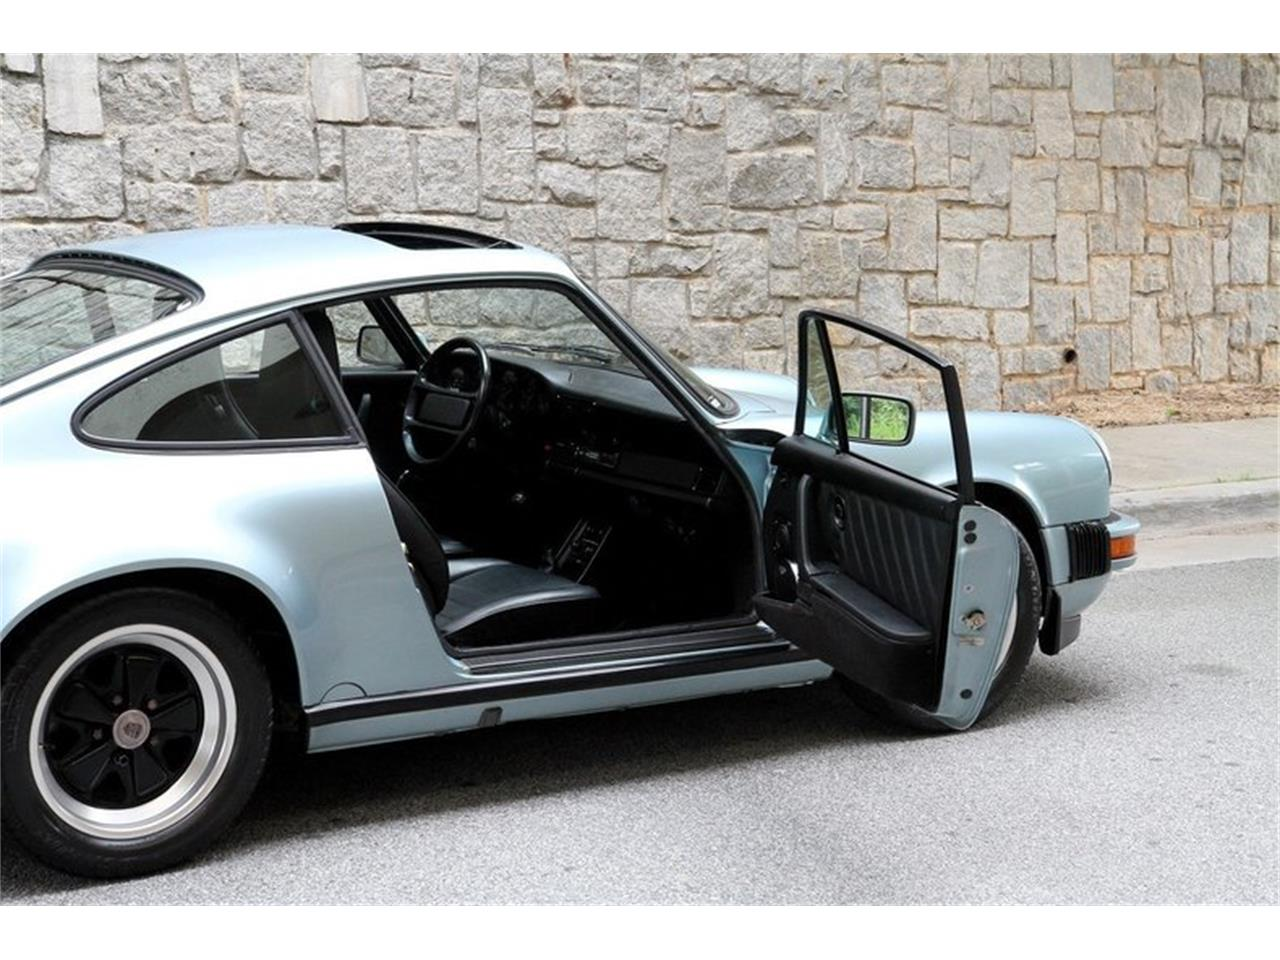 Large Picture of '87 Porsche 911 located in Atlanta Georgia - $34,900.00 Offered by Motorcar Studio - OGK8